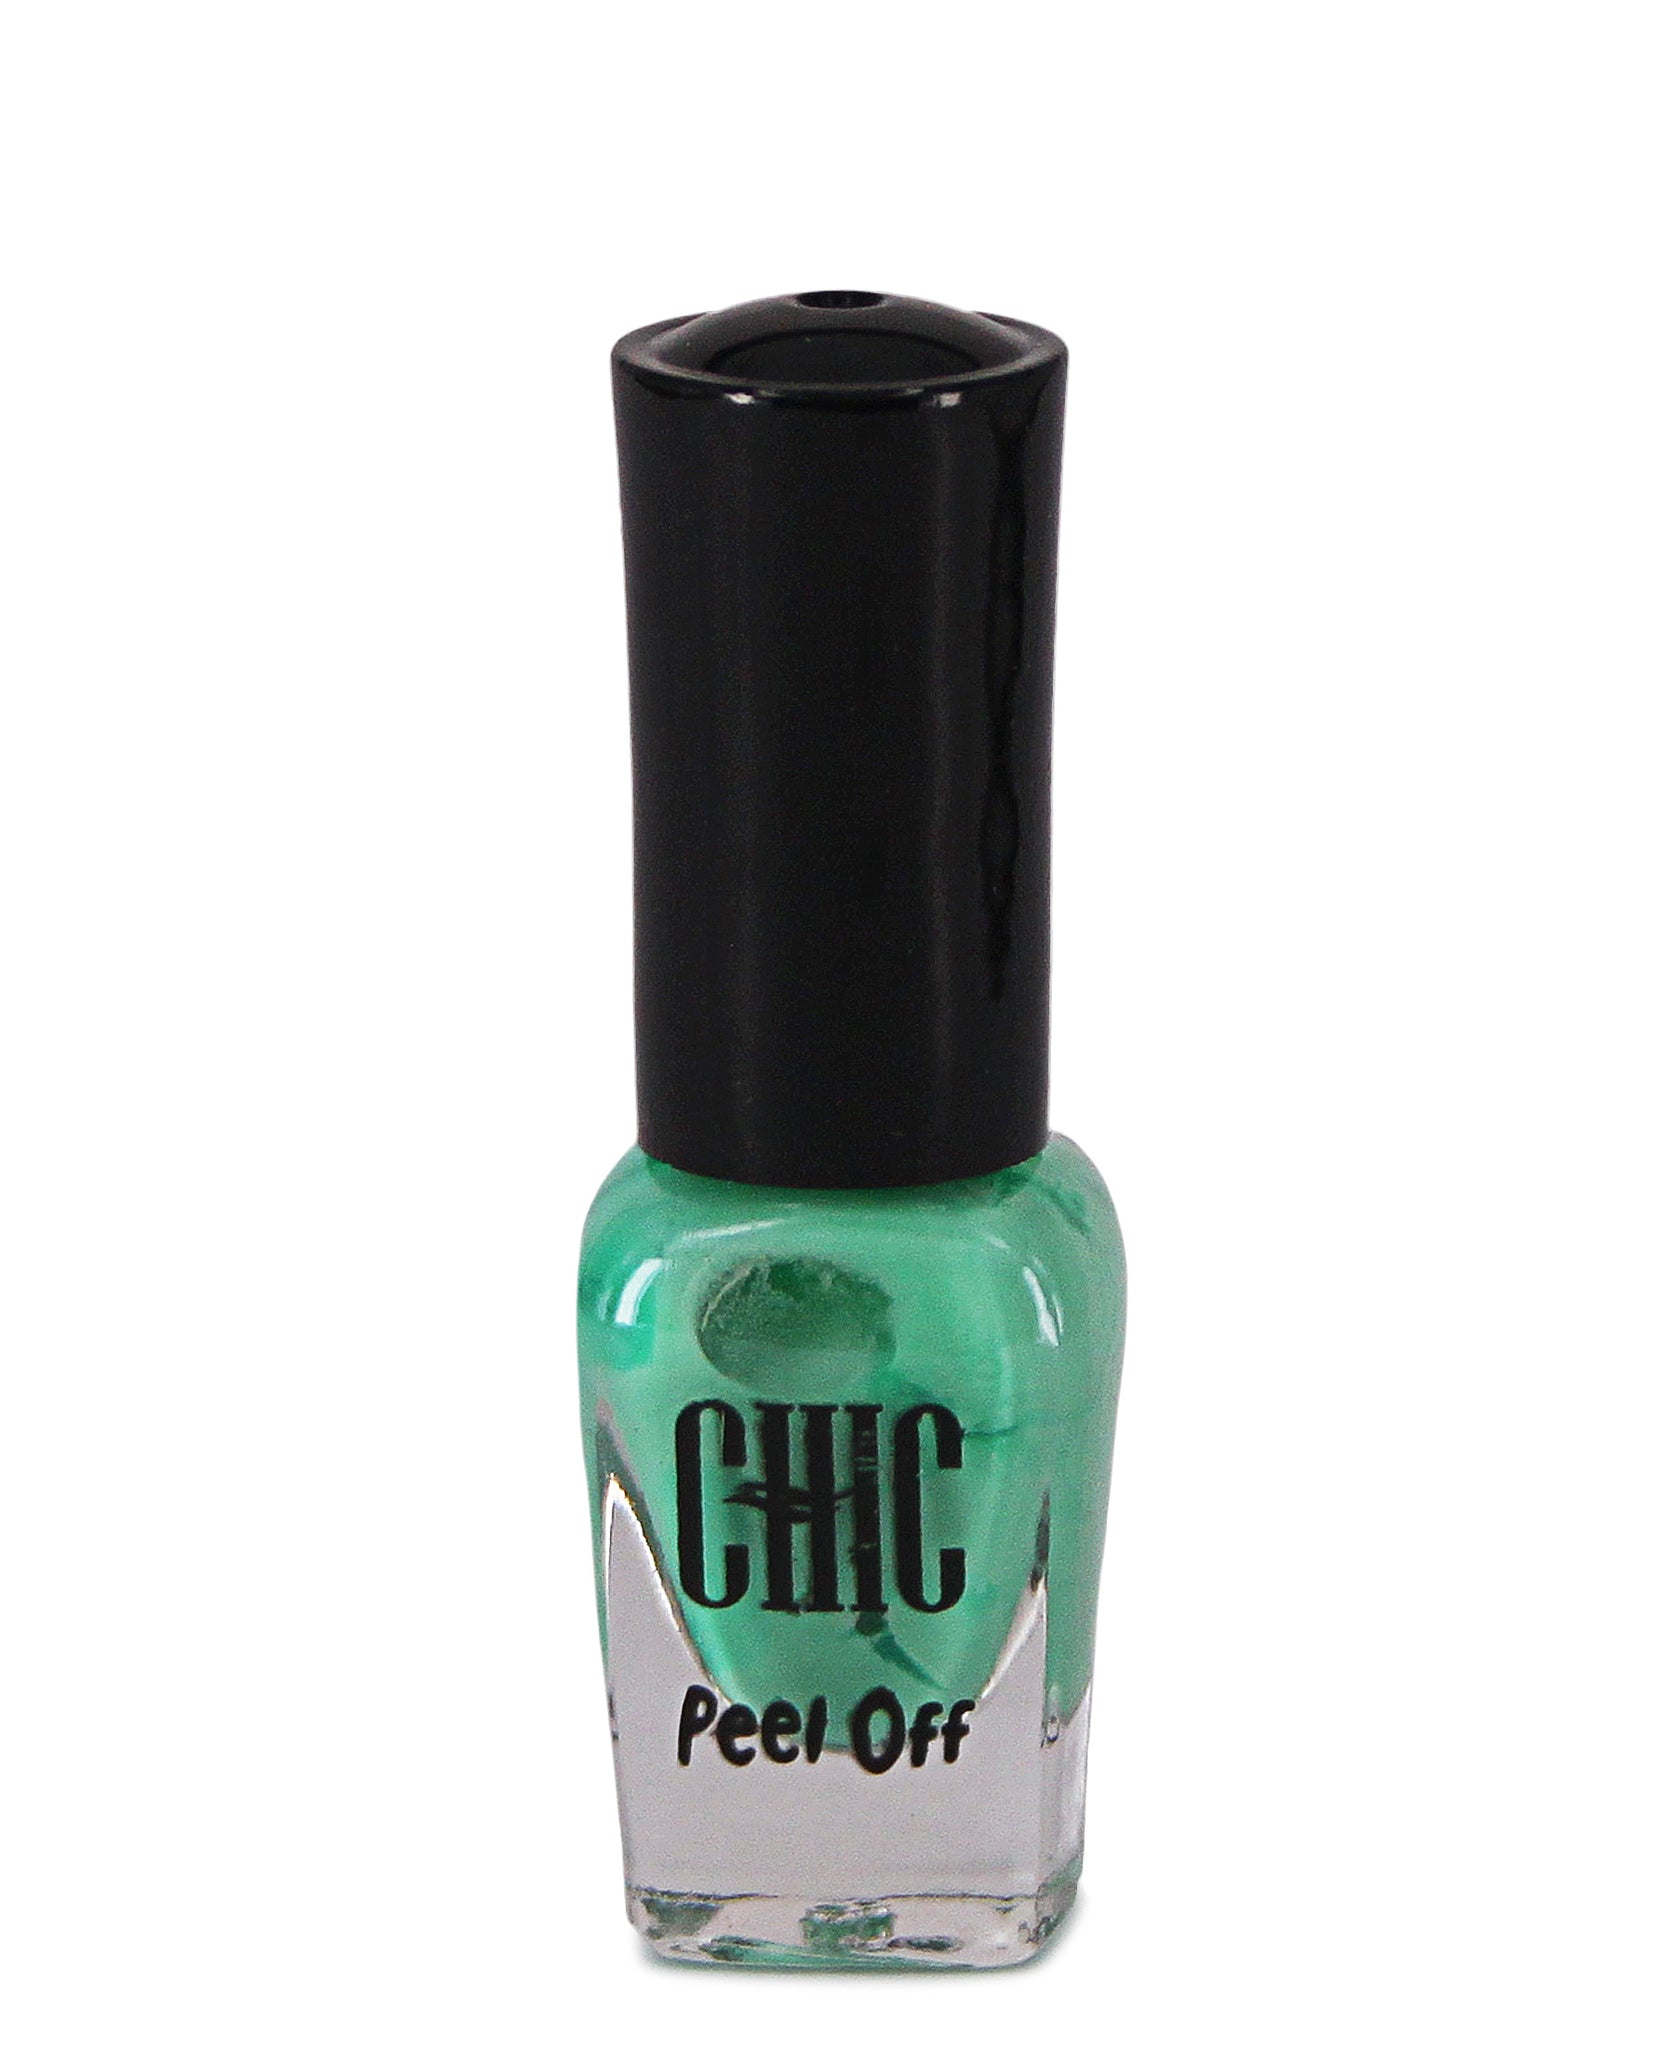 Peel-Off Nail Polish - Green